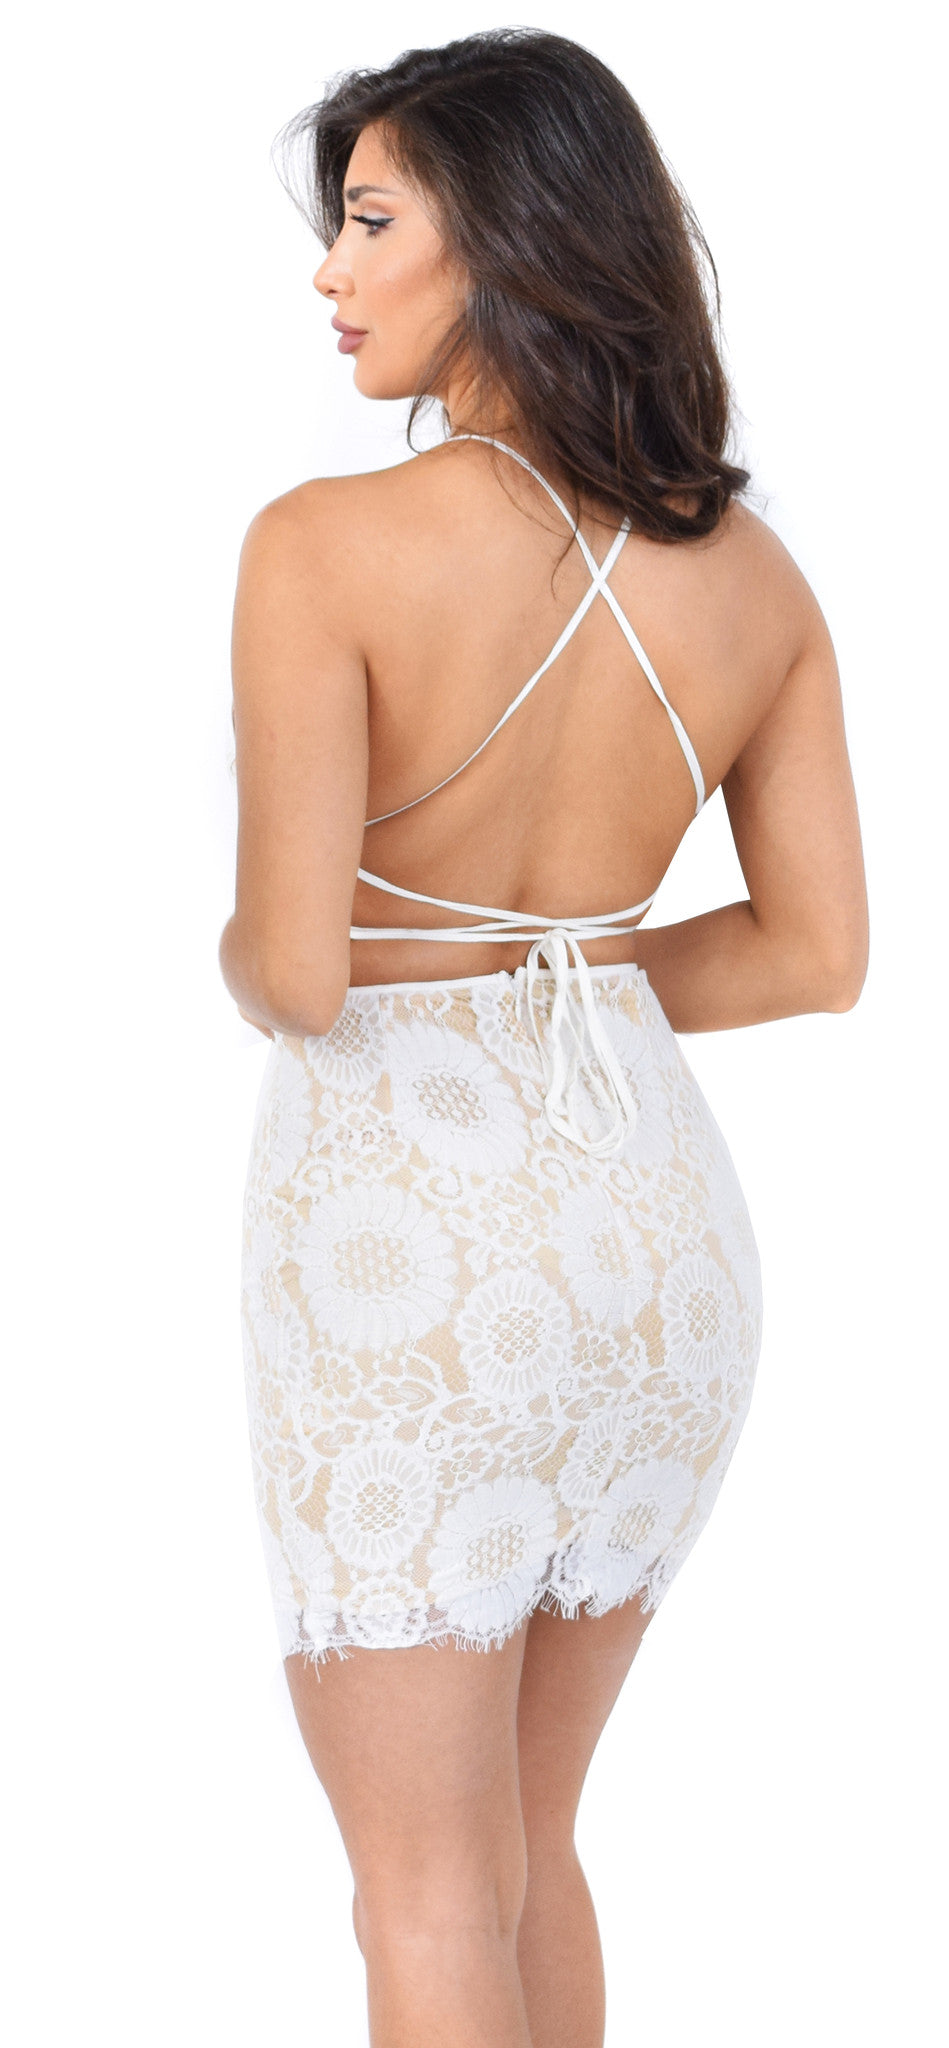 Carlita White Nude Lace Dress - Emprada